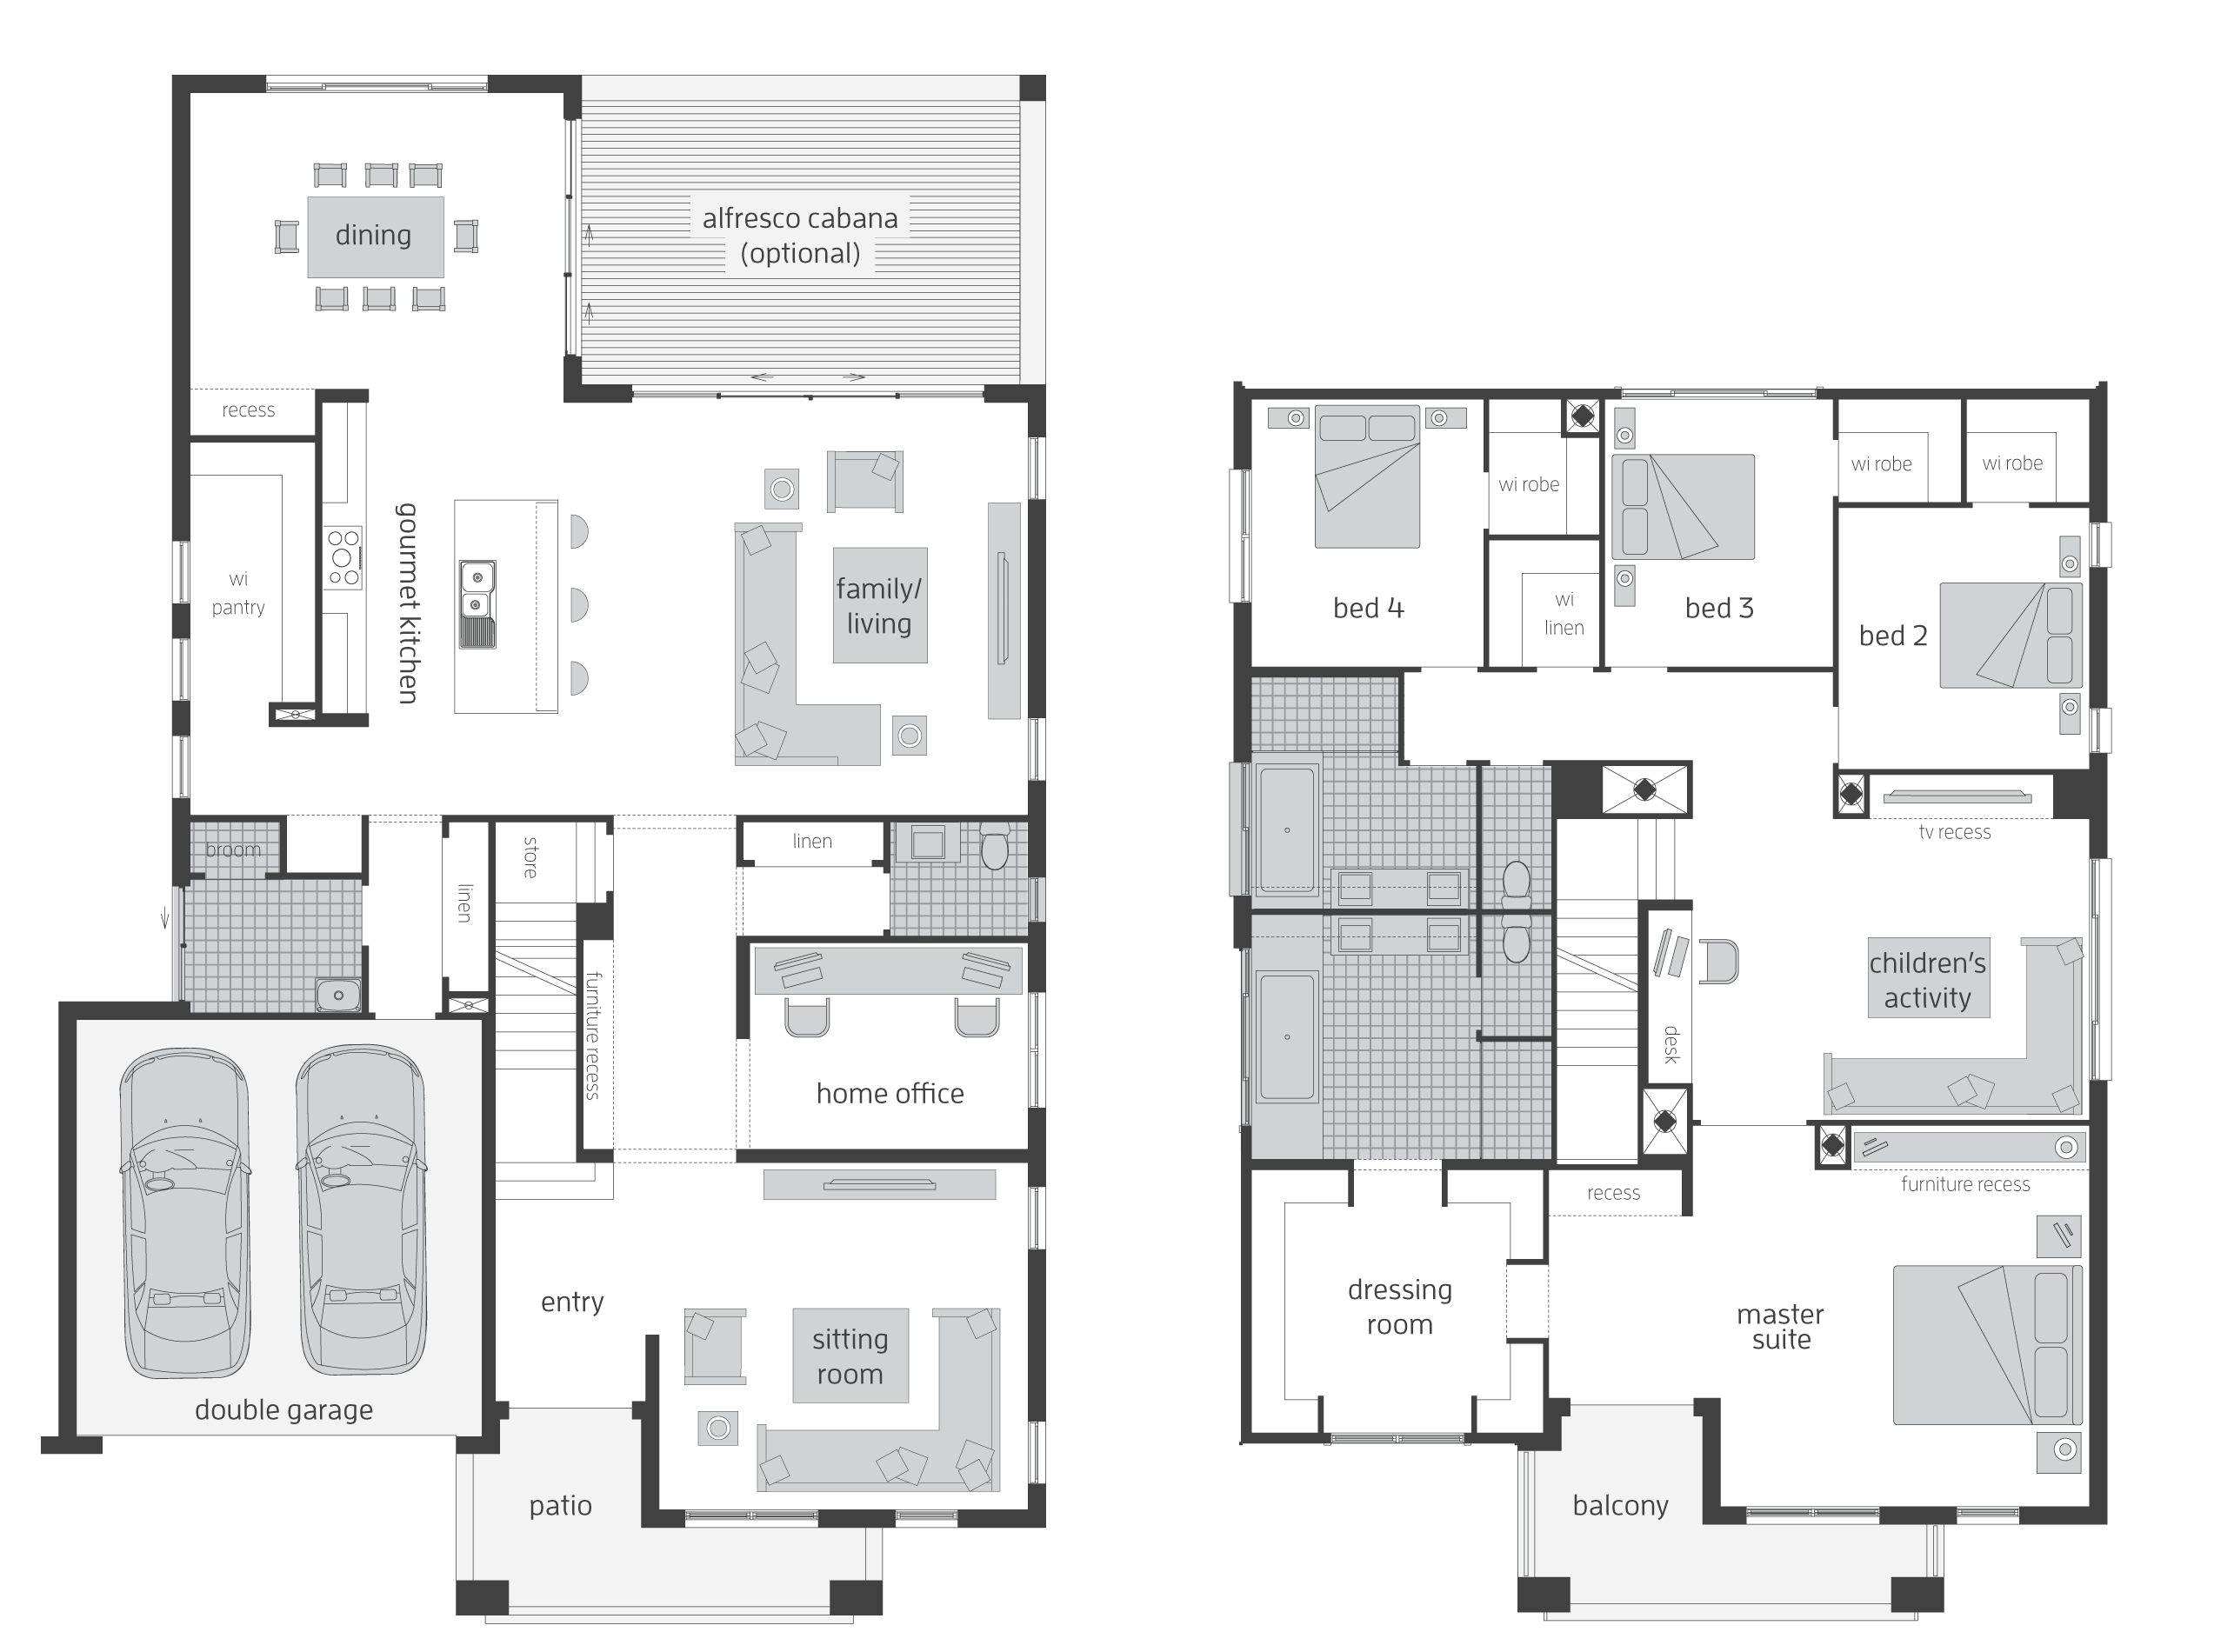 2 Bedroom Modern House Plans 2 Storey Floor Plan Beautiful Places Home Plans In 2019